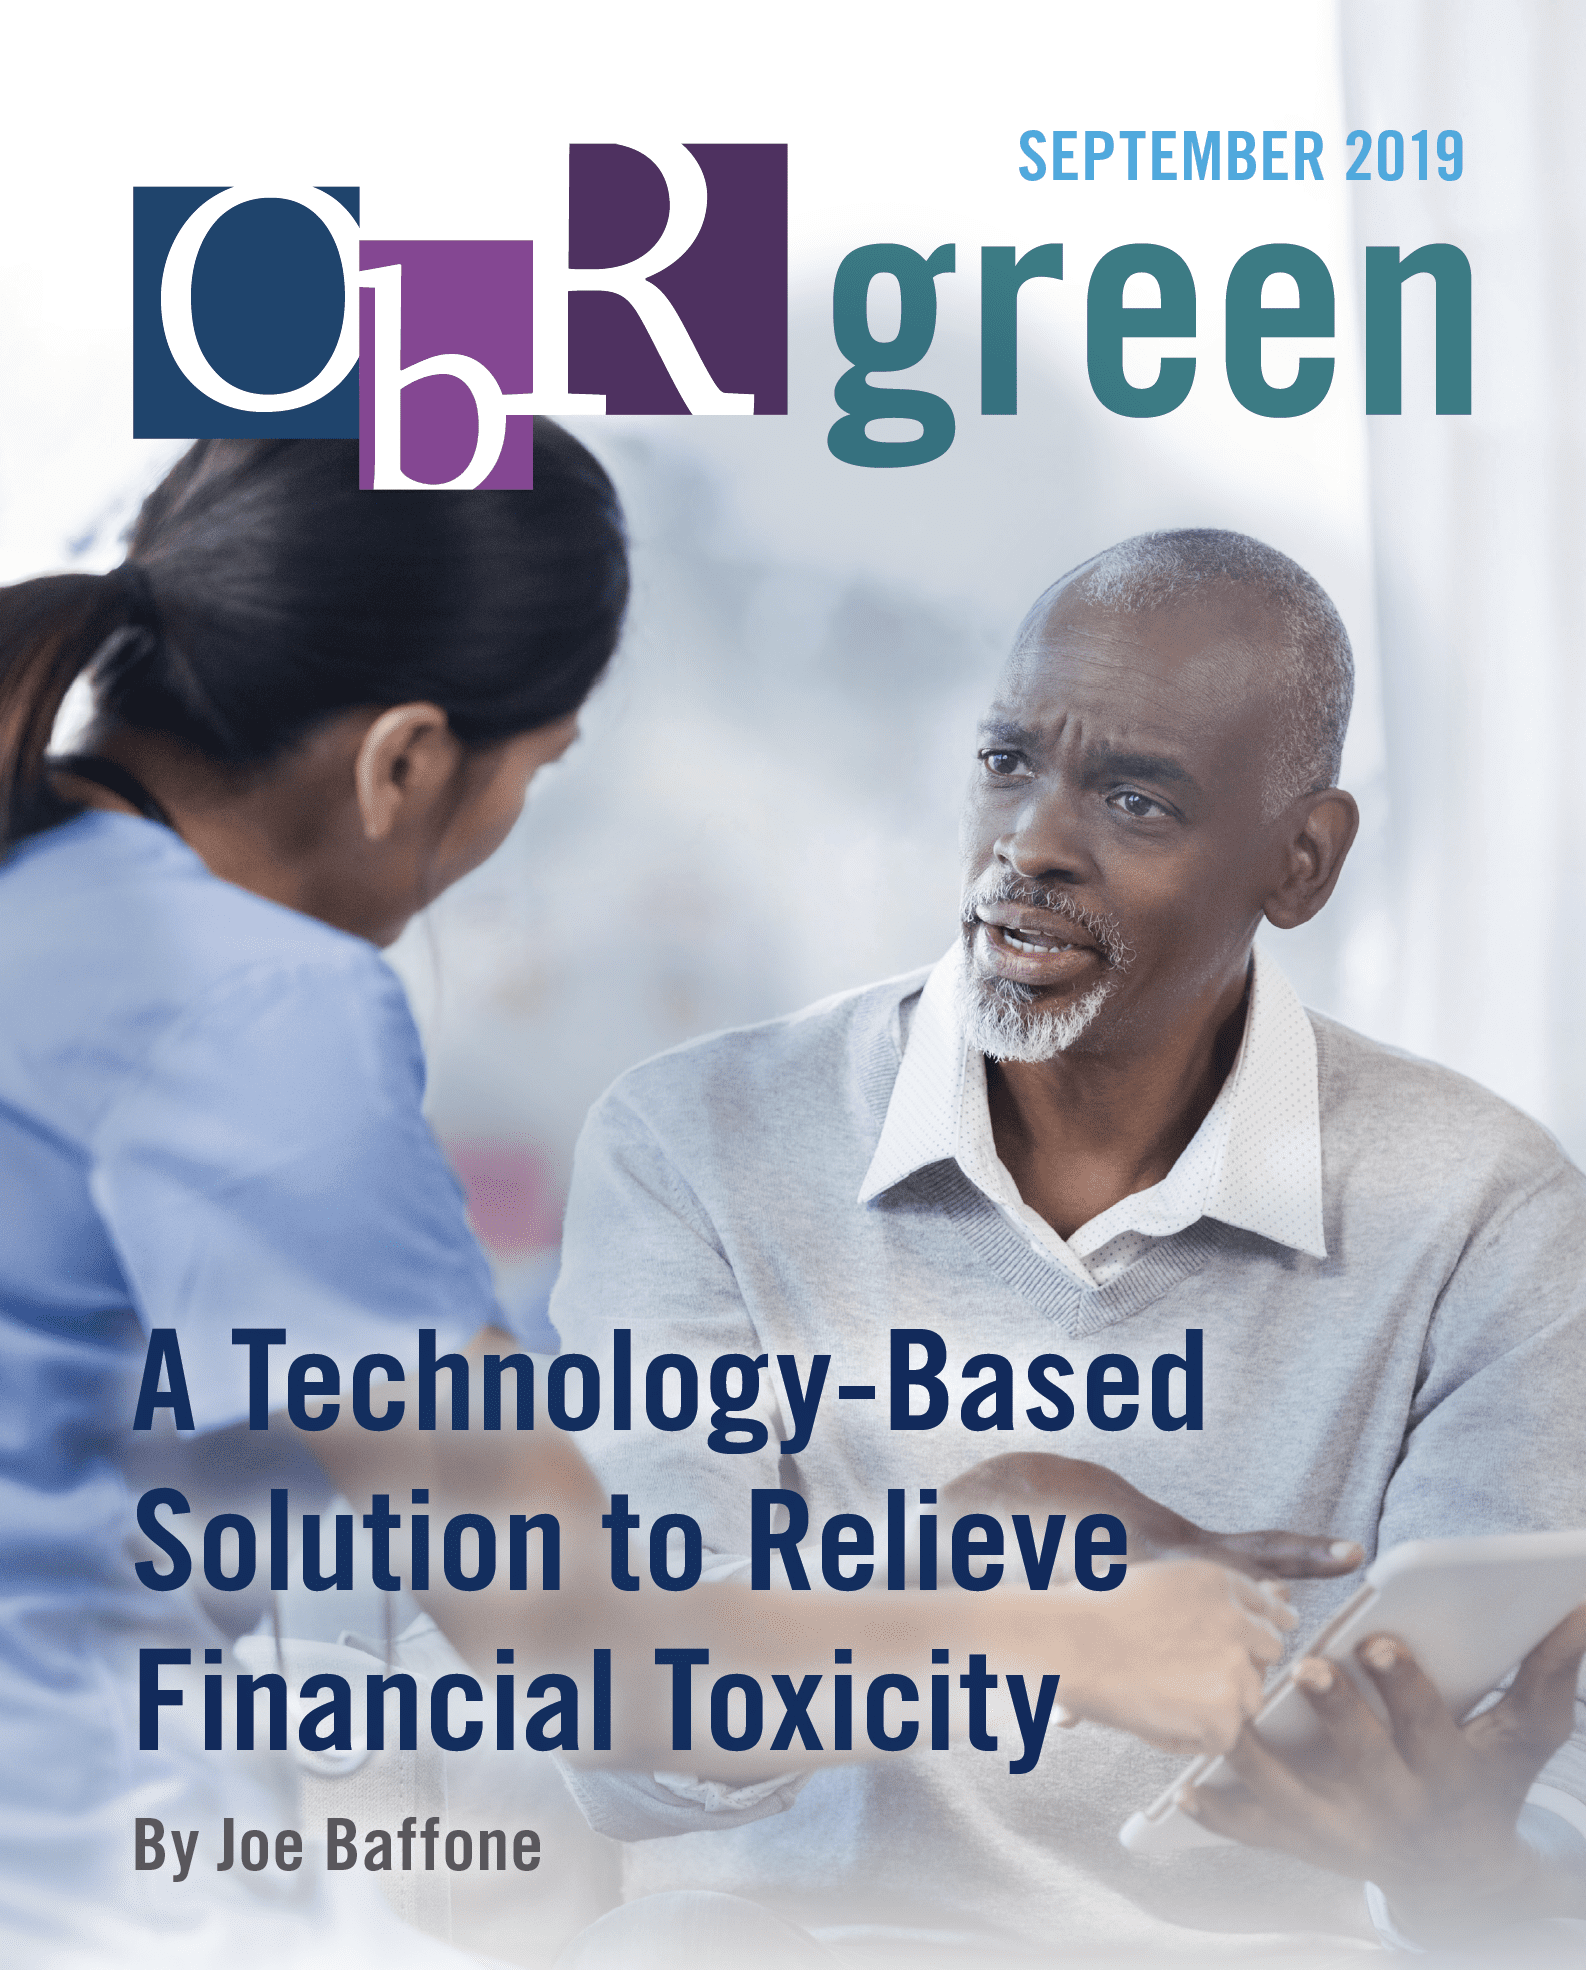 OBR Green cover article